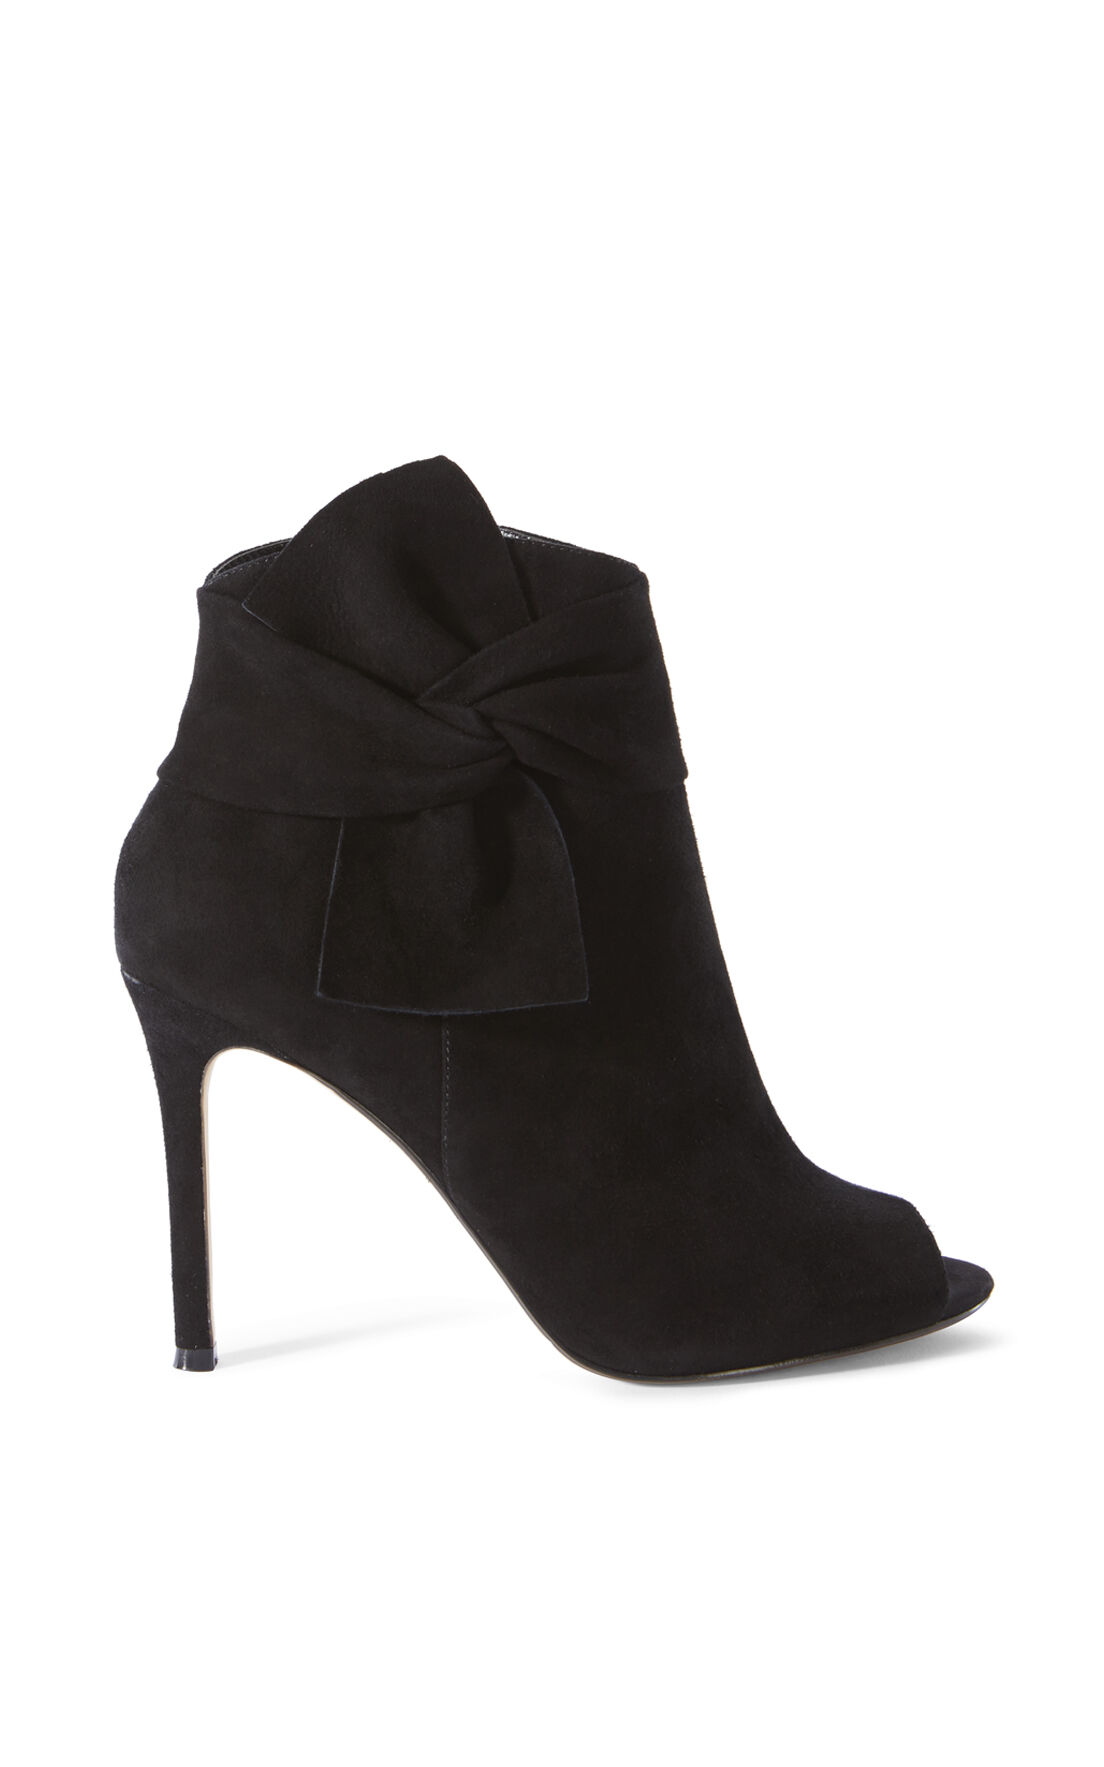 Karen Millen, BOW ANKLE BOOT Black 0